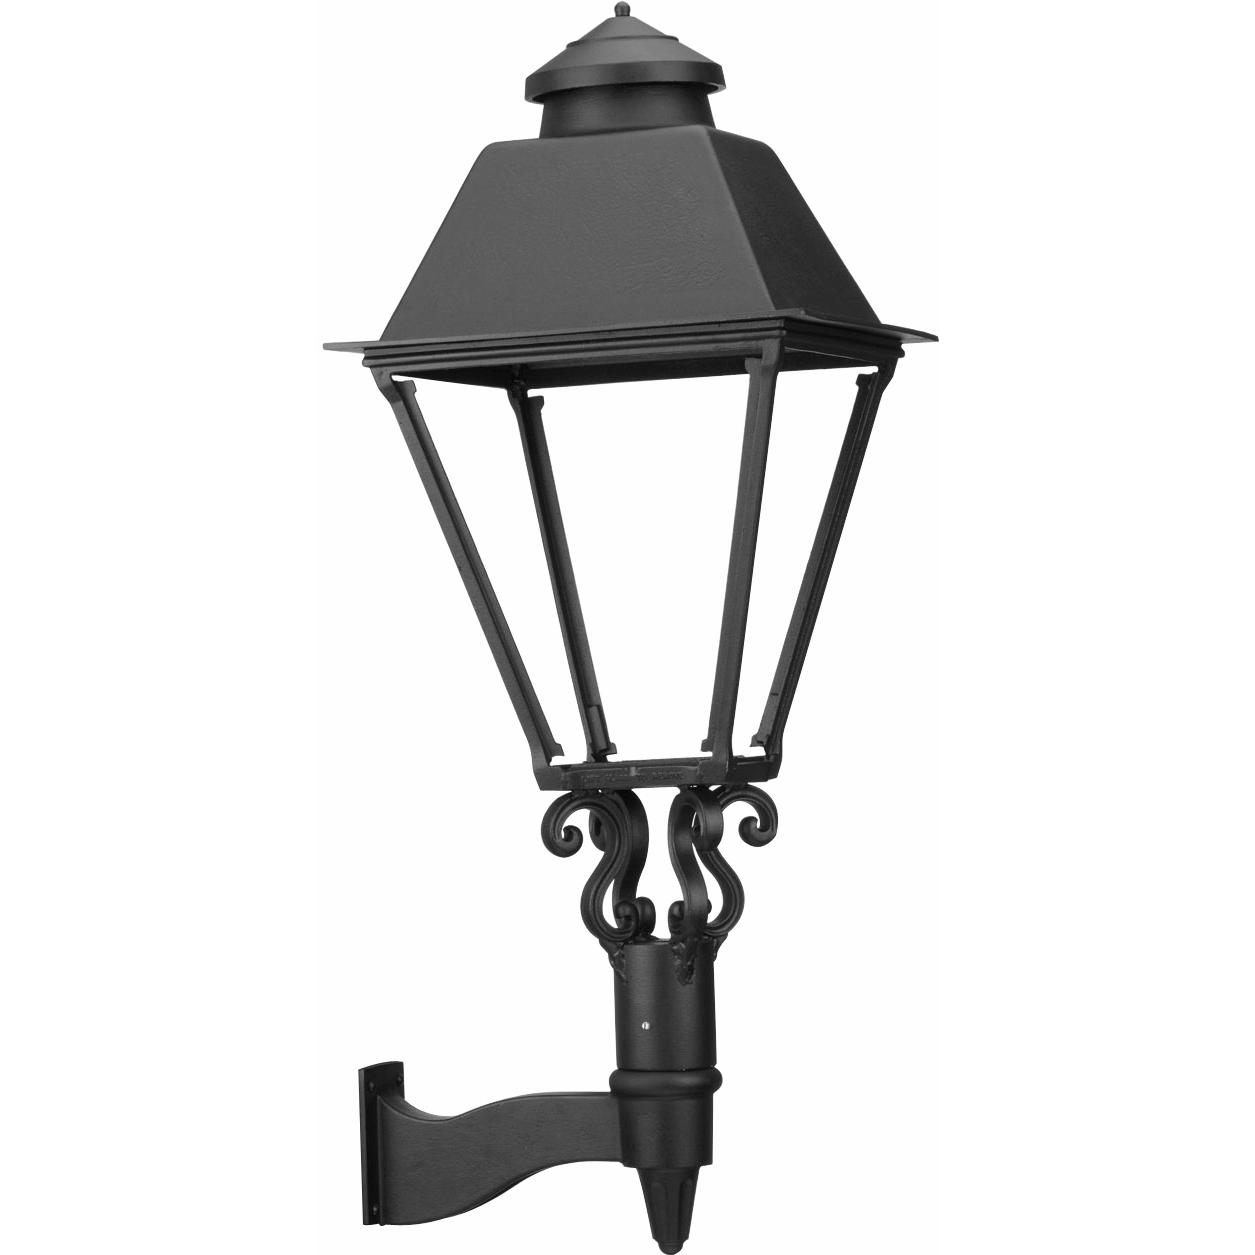 American Gas Lamp Works GL3000 Cast Aluminum Manual Ignition Propane Gas Light With Dual Mantle Burner And Standard Wall Mount